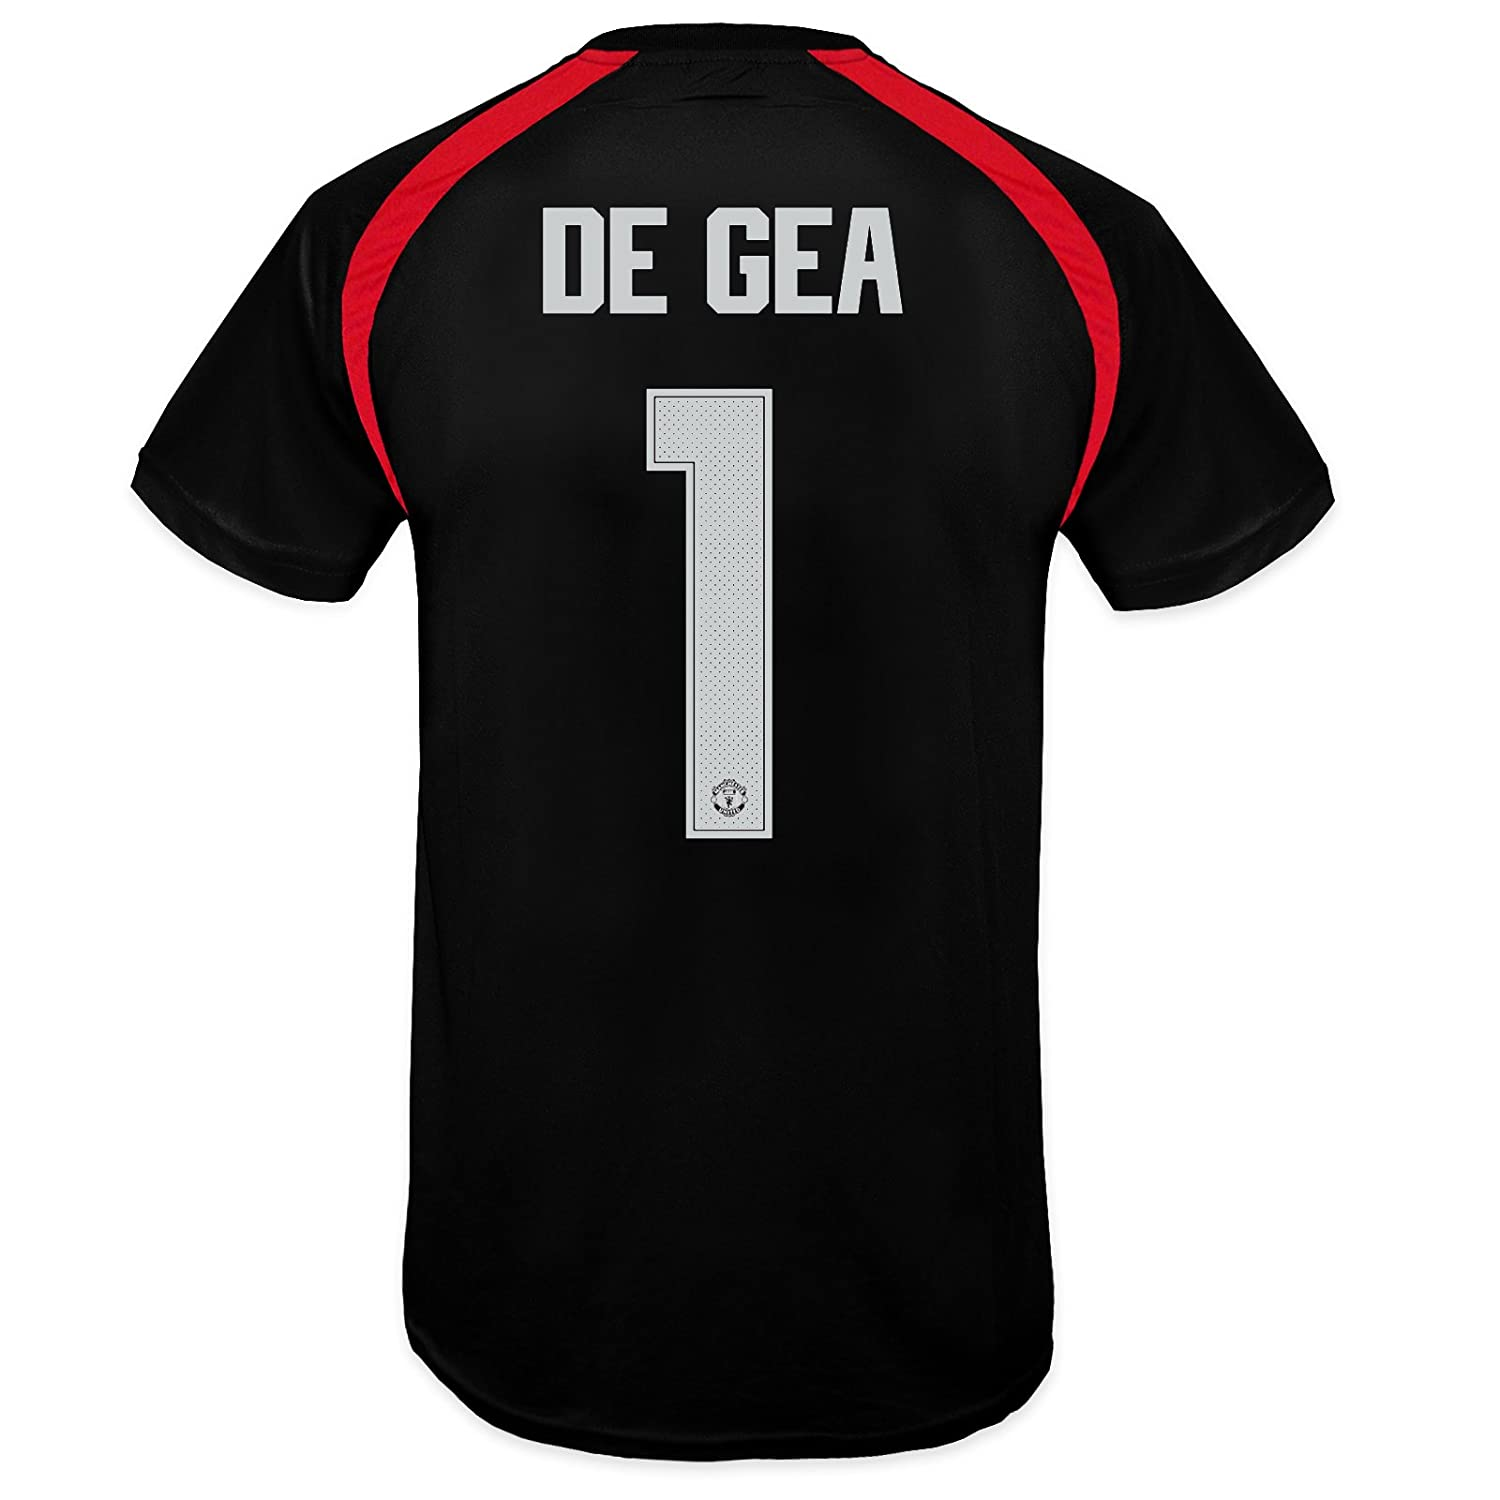 5f067e492 Amazon.com  Manchester United FC Boys De Gea 1 Poly Training Kit T-Shirt  Black 12-13 Years  Clothing